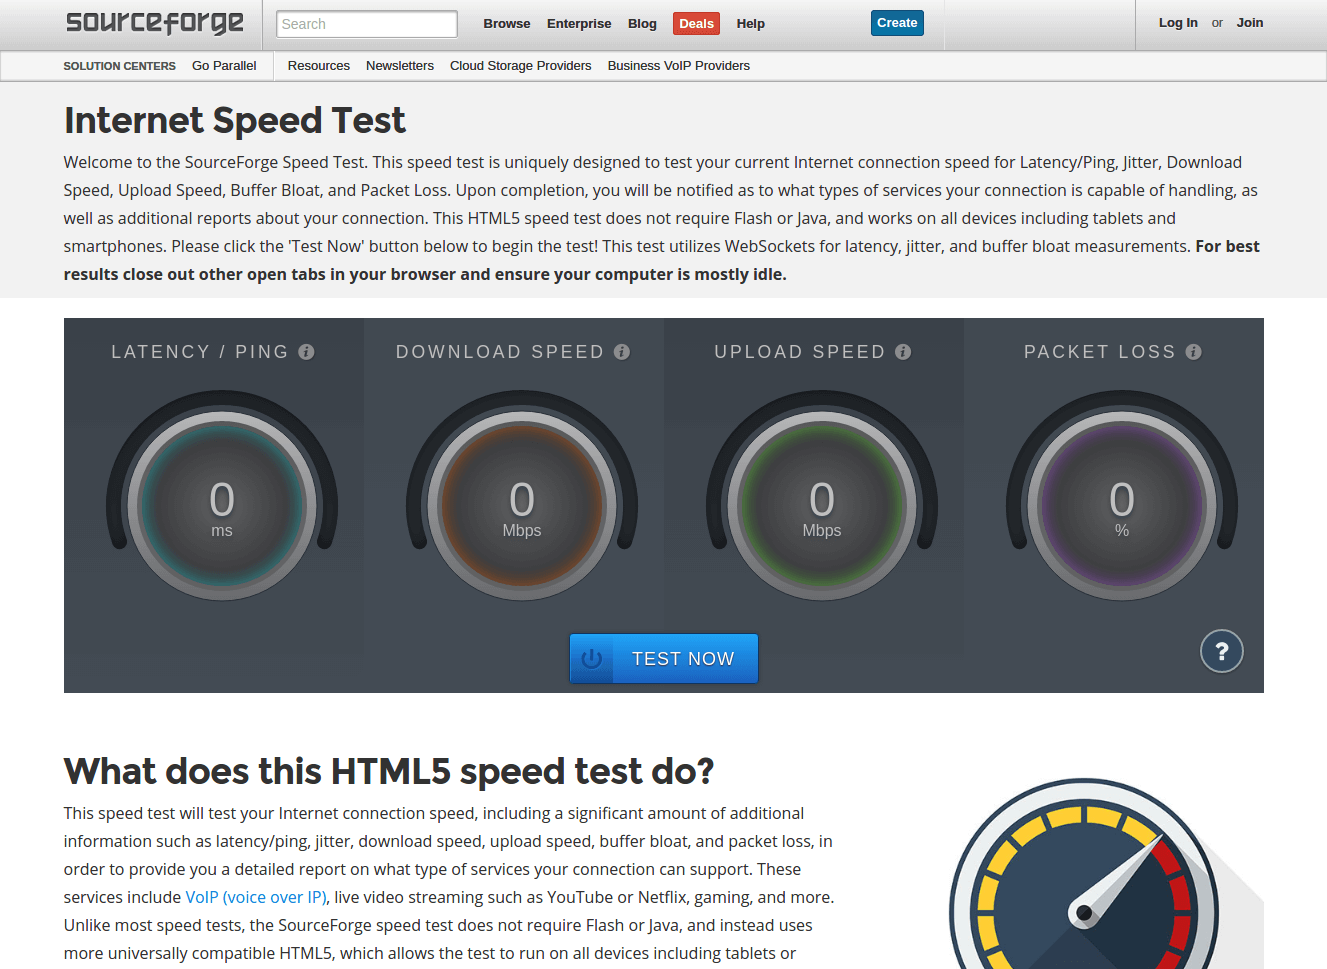 sourceforge-speedtest